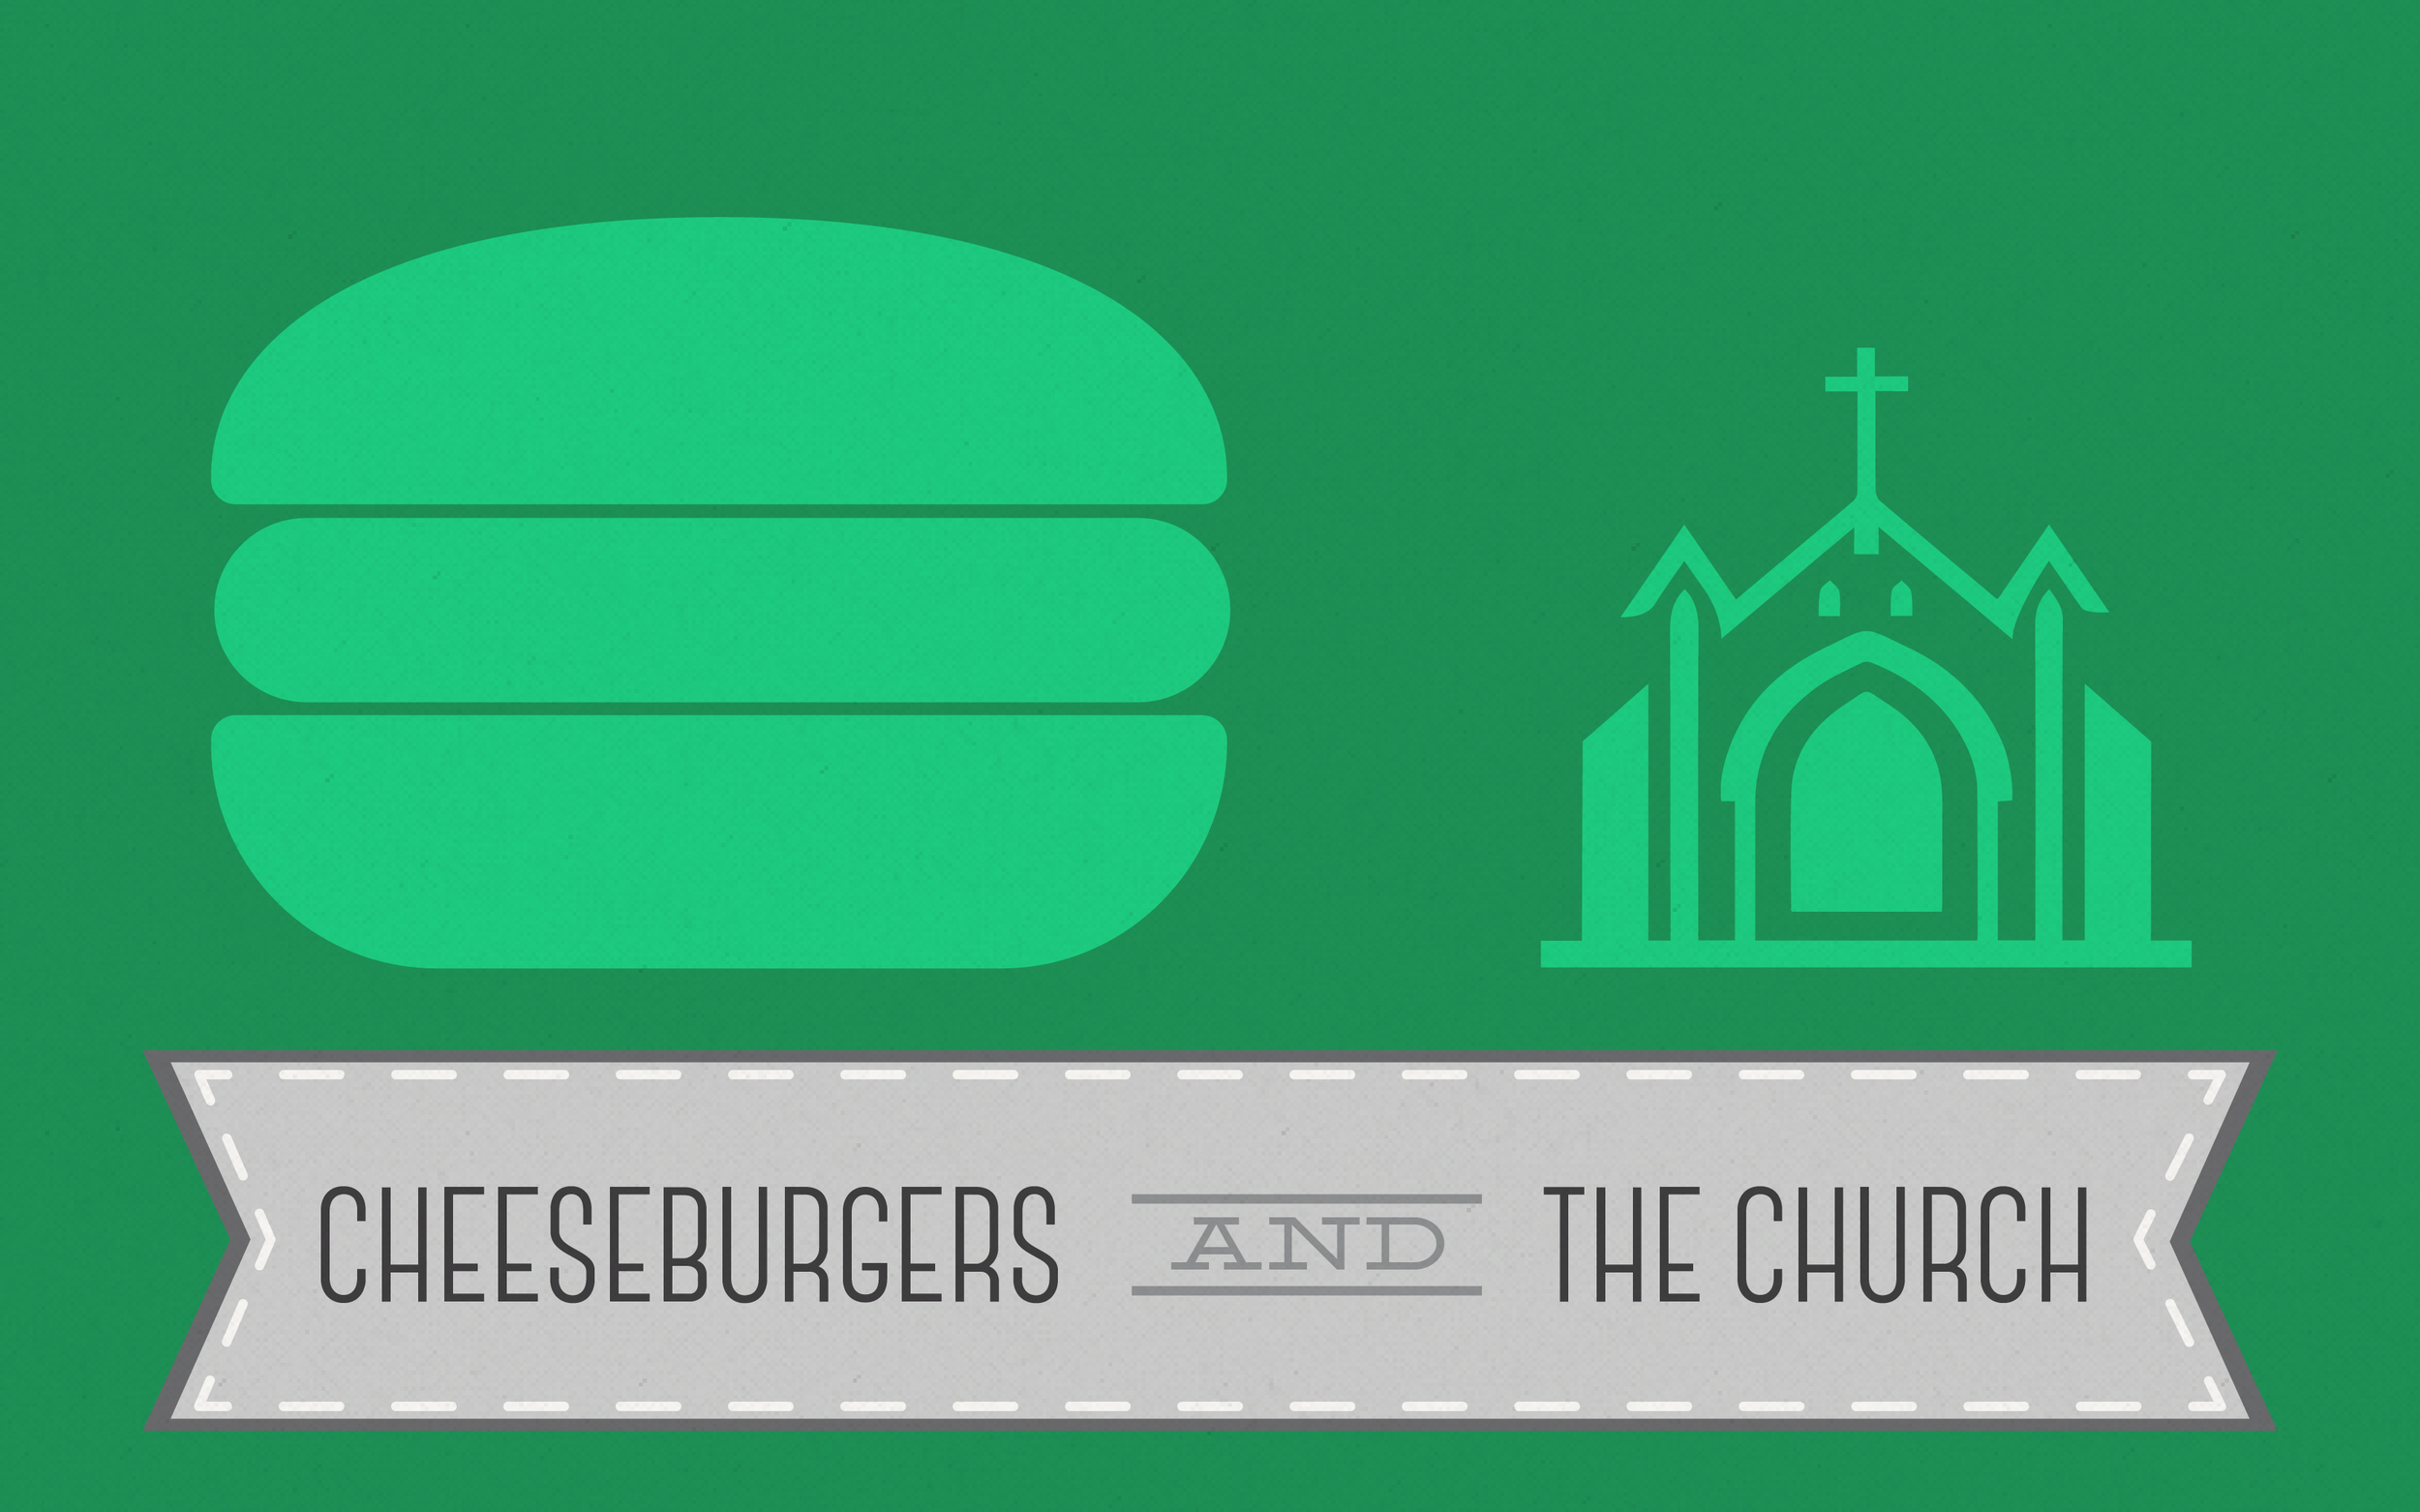 Cheeseburgers and The Church